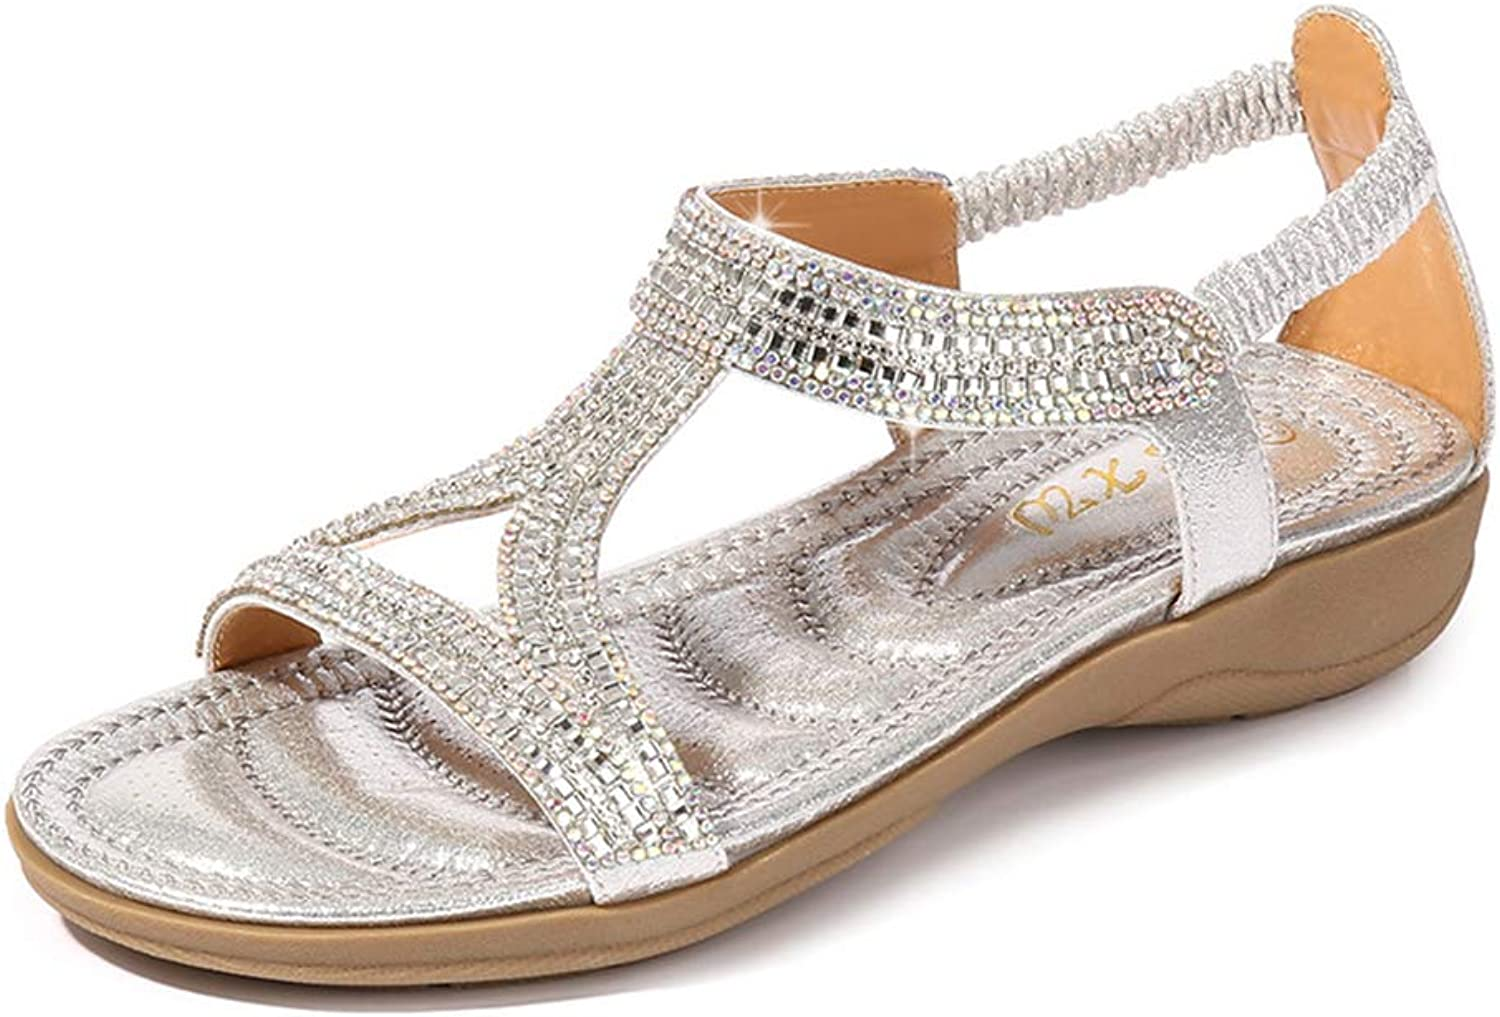 Navoku Outdoor Jeweled Beaded Sandals for Women Flat shoes